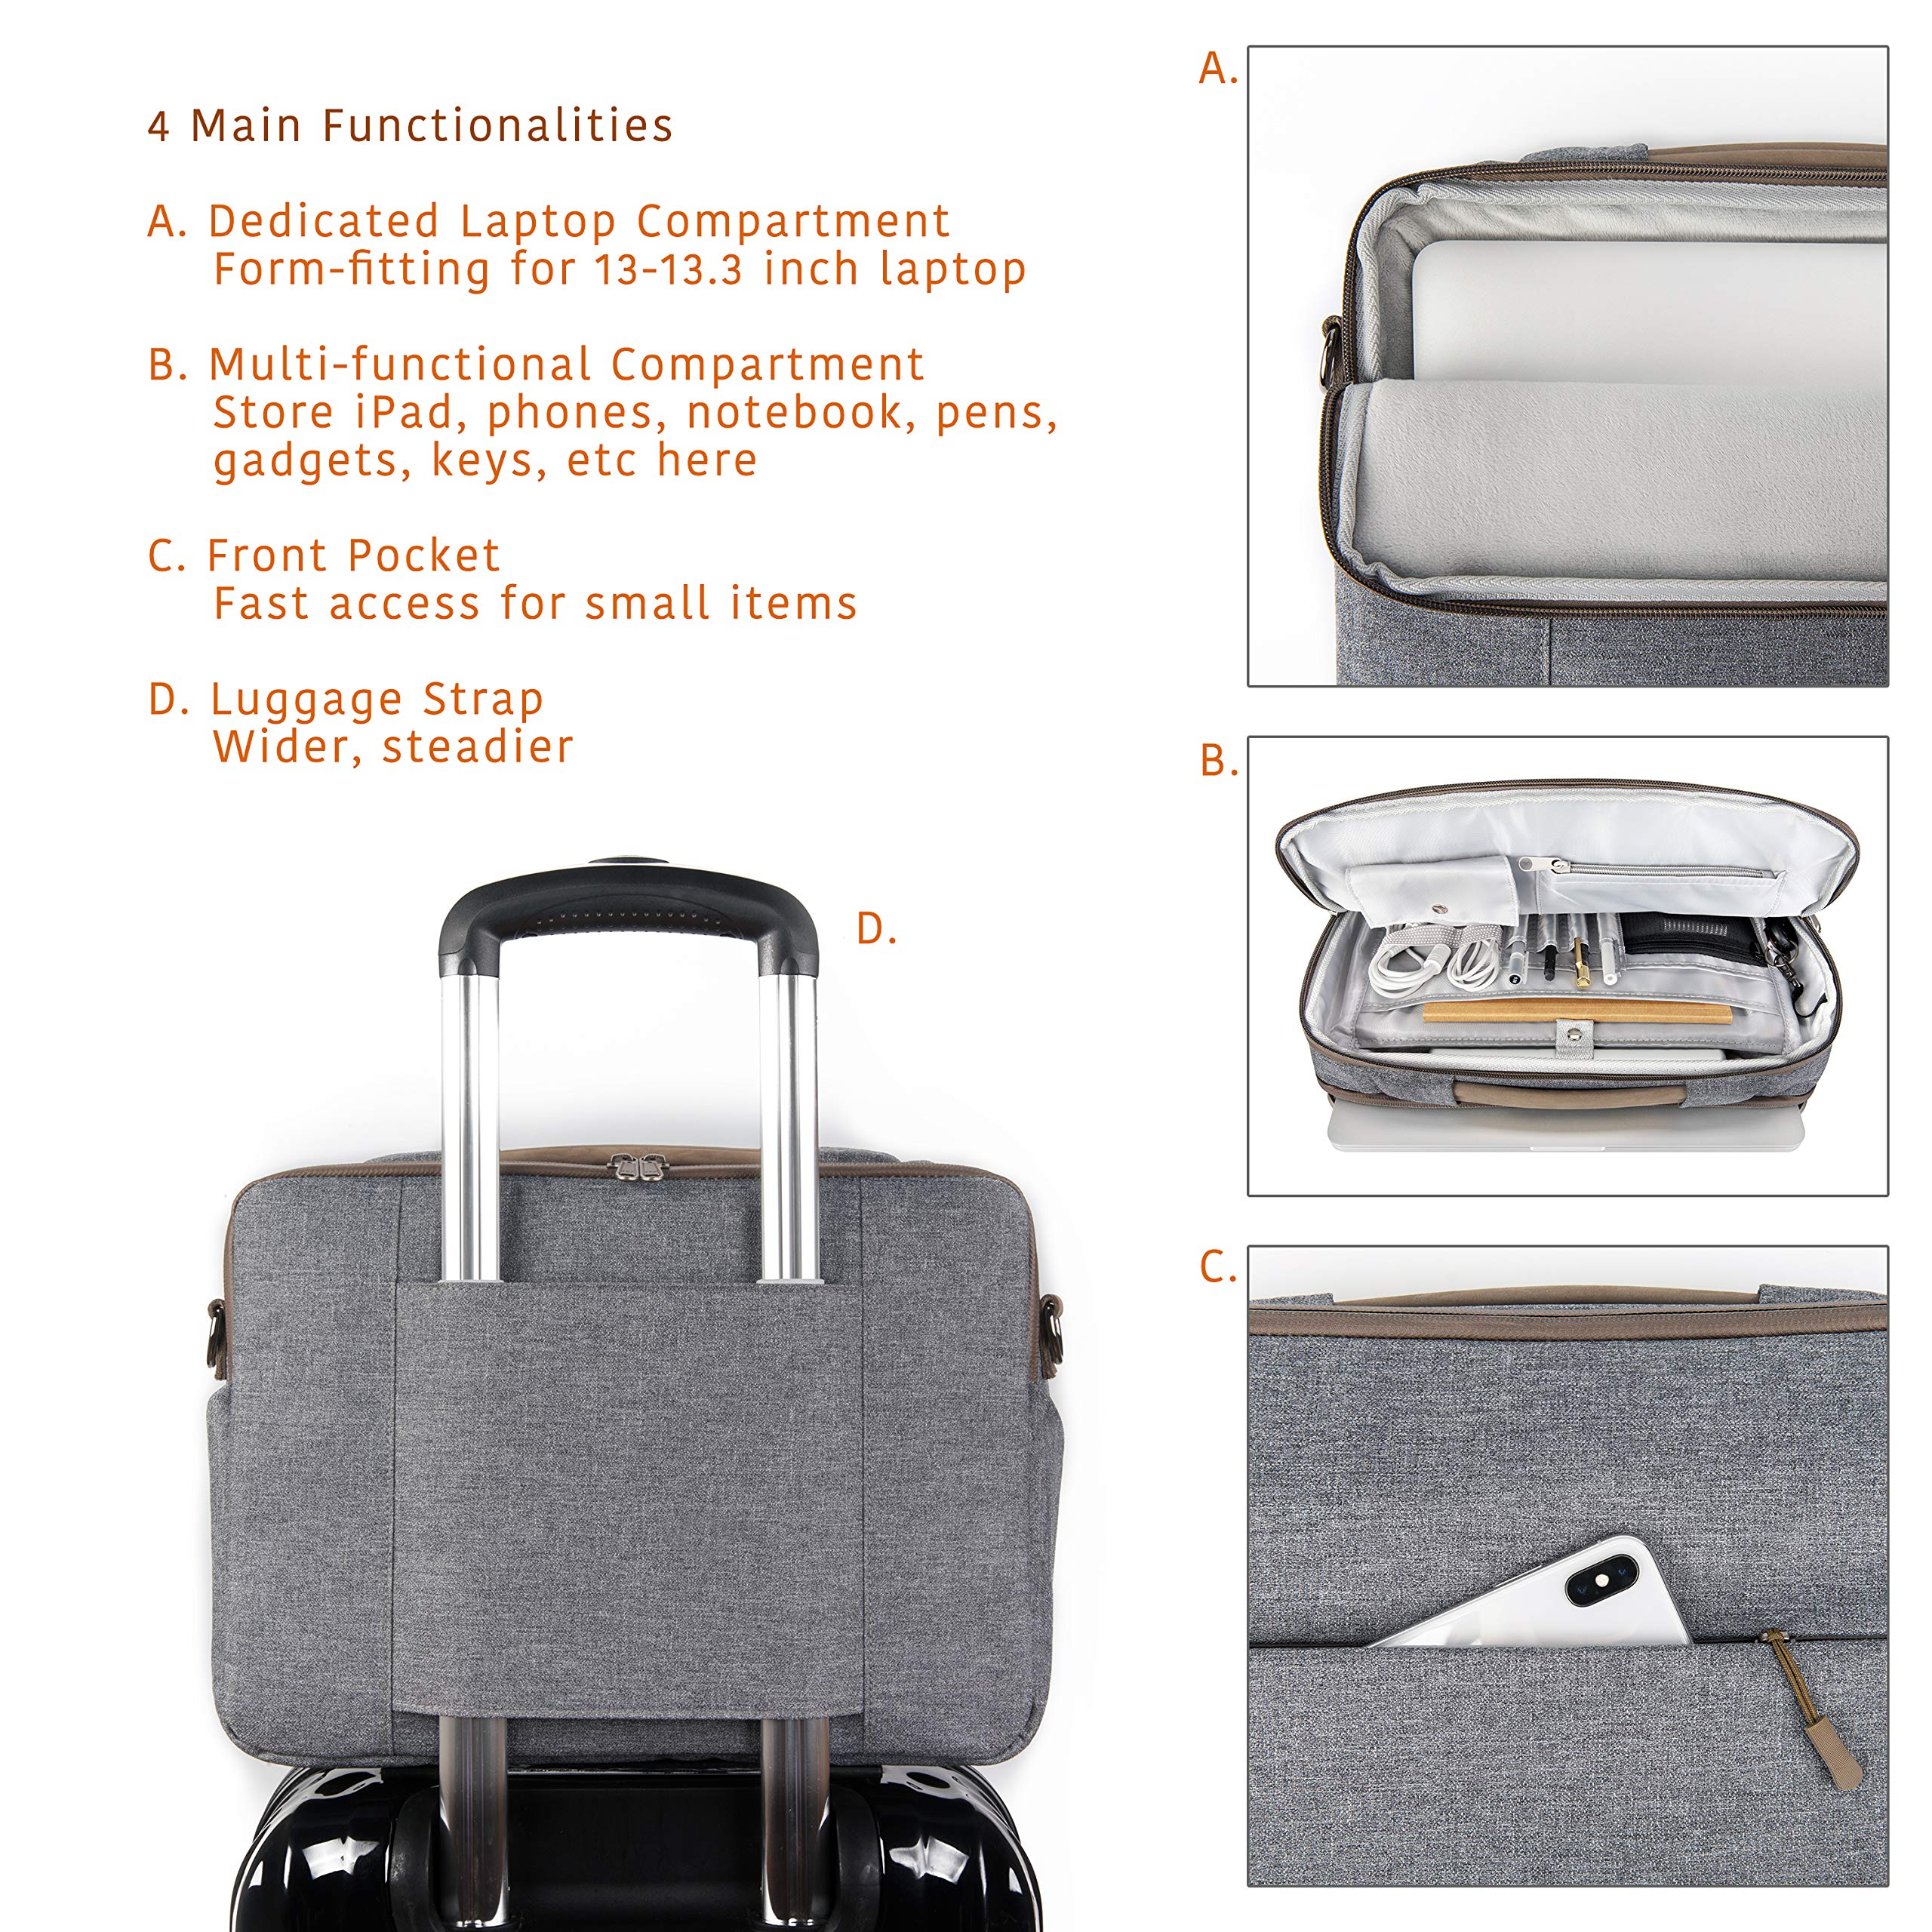 """Comfyable Laptop Bag 13 Inch, Computer Briefcase for Men with Organizer and Shoulder Strap for Travel and Business Shoulder Bag Fits 13.3"""" MacBook, Laptop, Tablet, Cool Grey by Comfyable (Image #3)"""